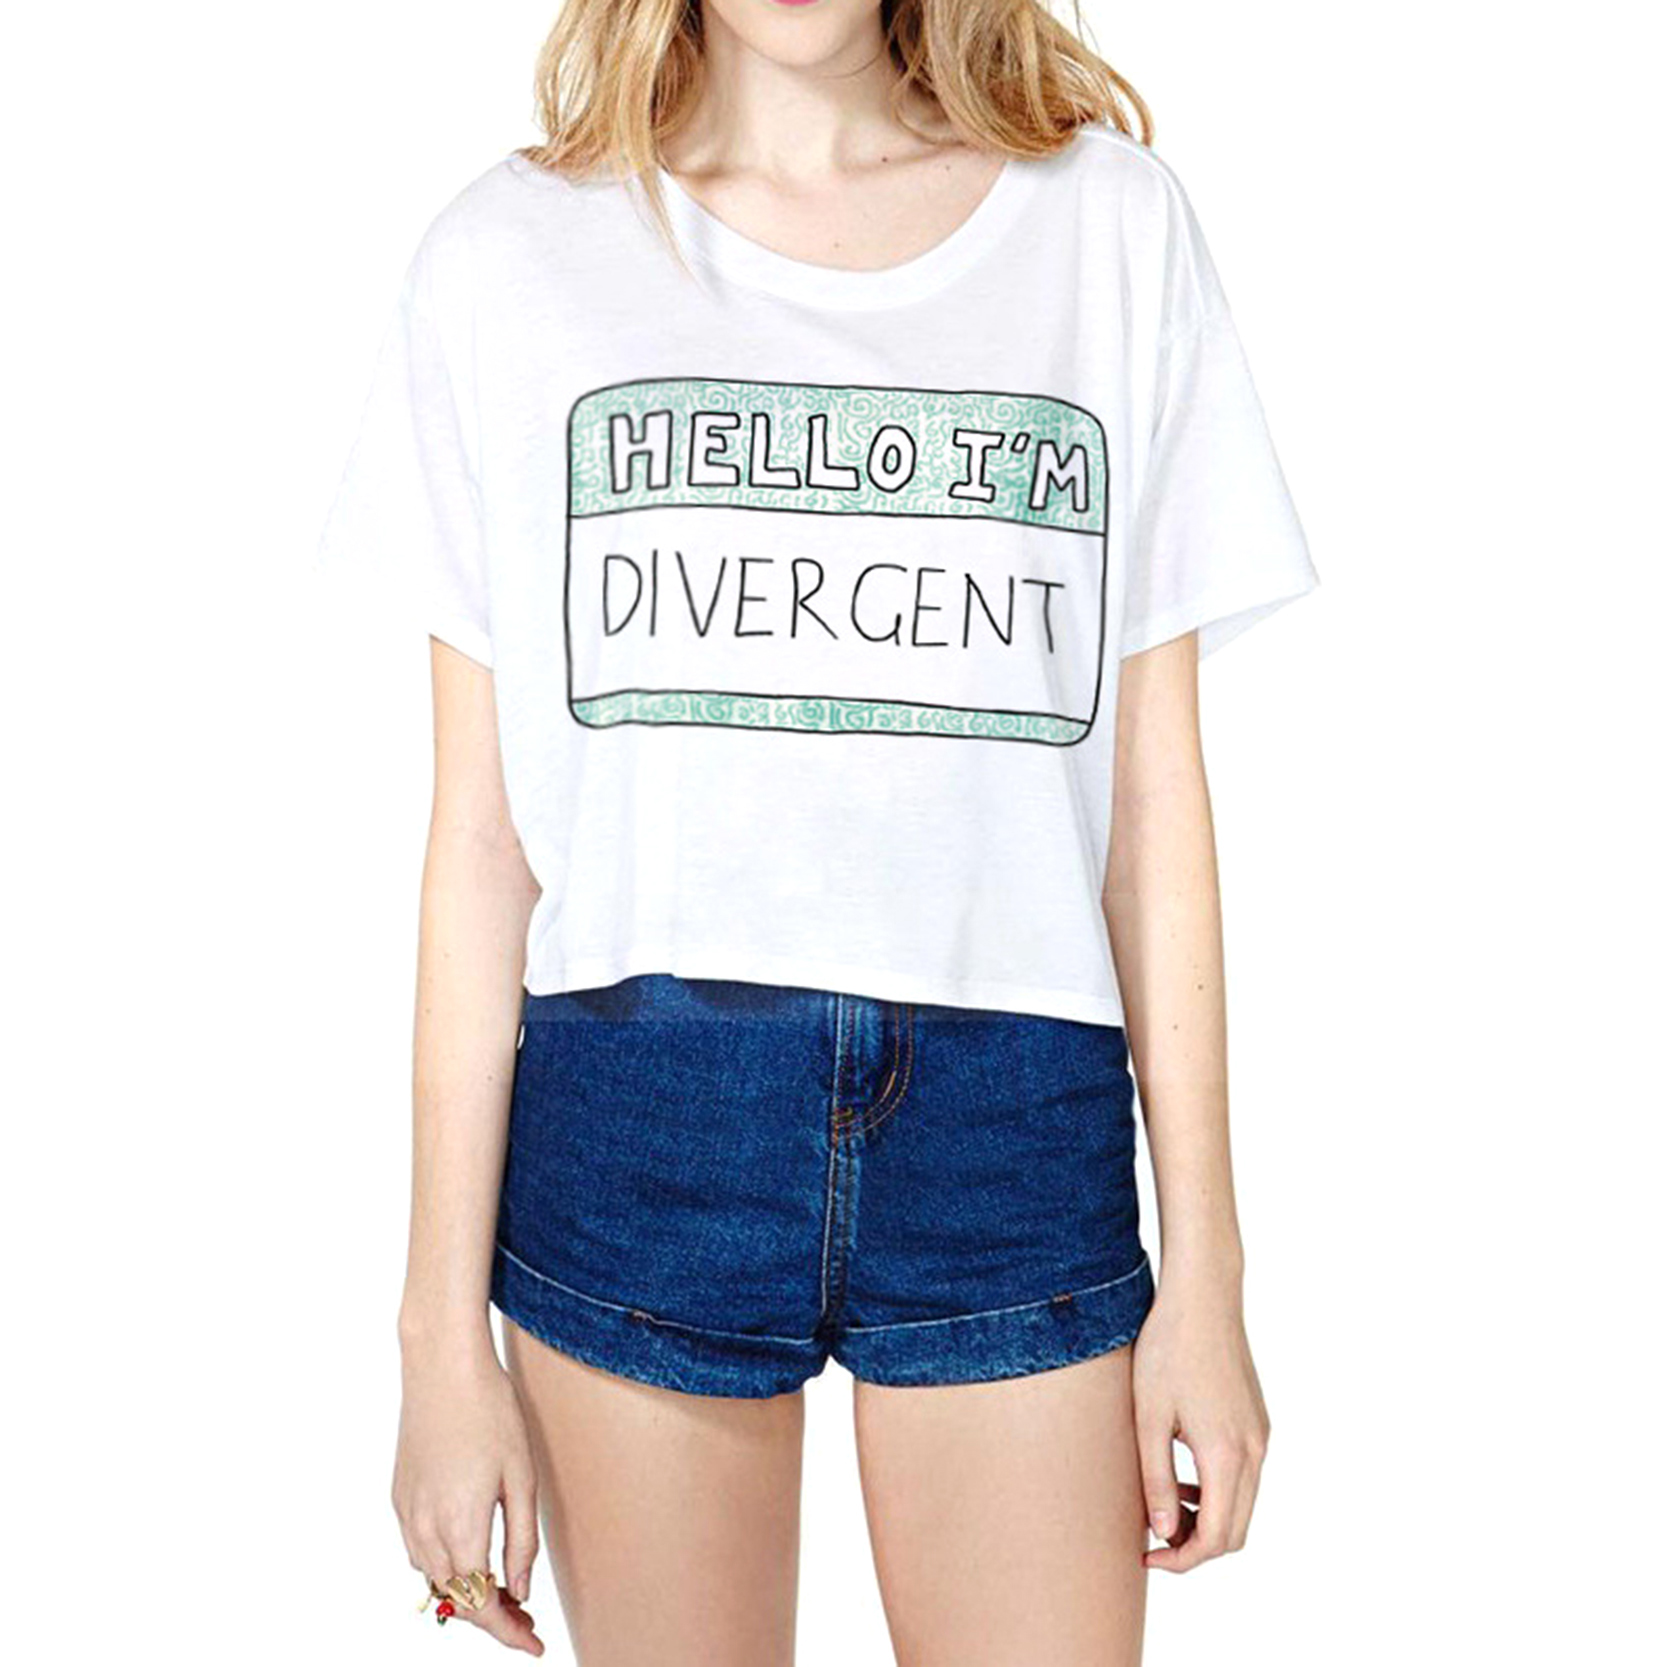 Cool T Shirts For Girls | www.imgkid.com - The Image Kid ...